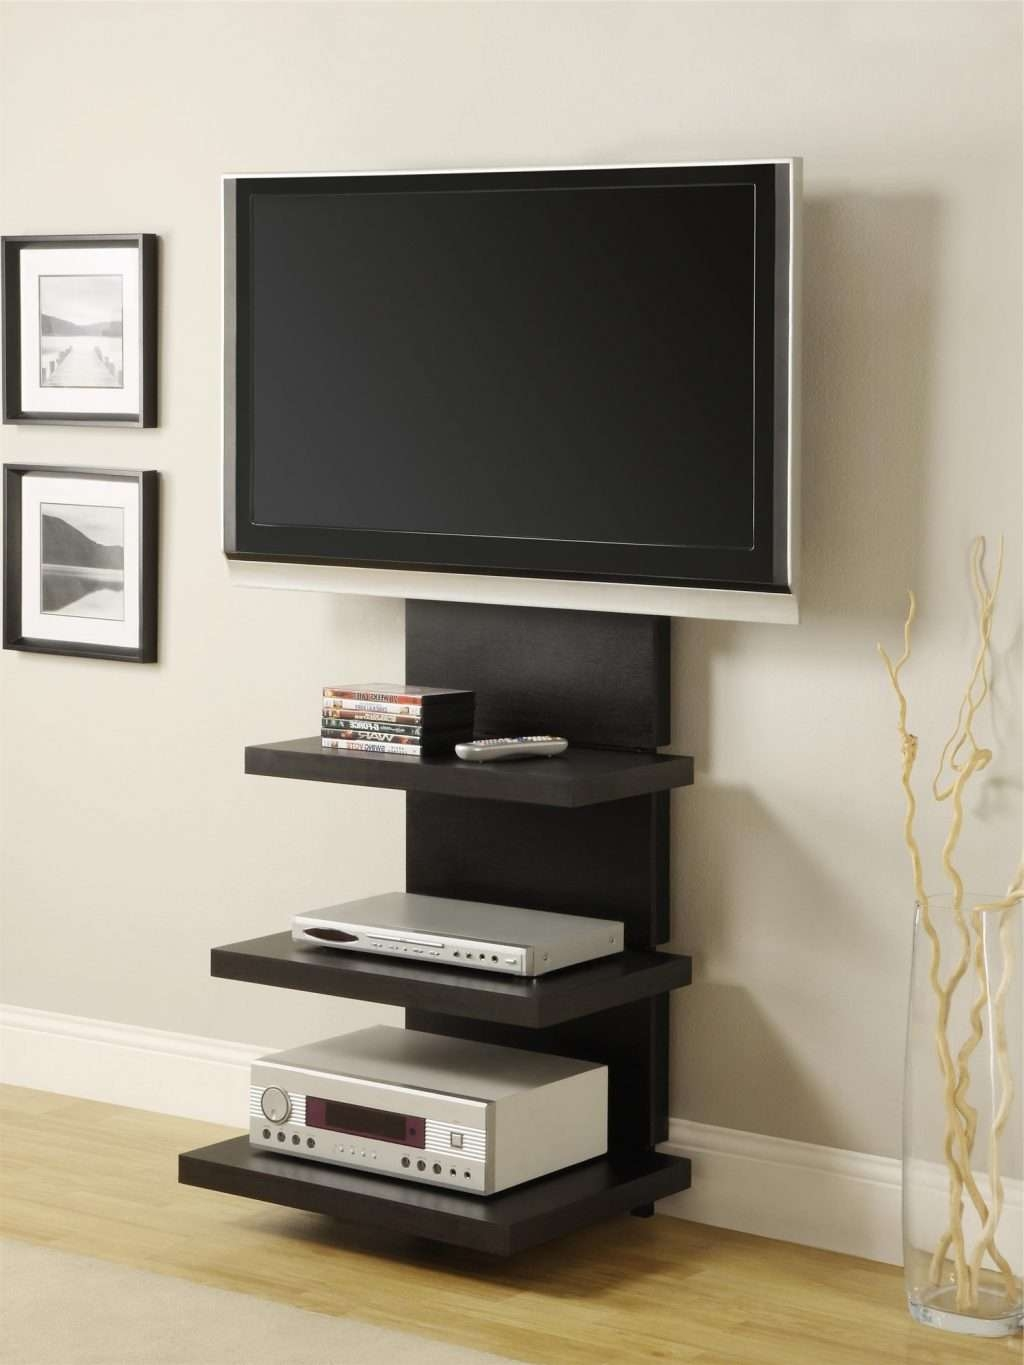 Remarkable Space Saving Tv Stand Room Ideas For Small Spaces For Tv Stands For Small Rooms (View 10 of 15)